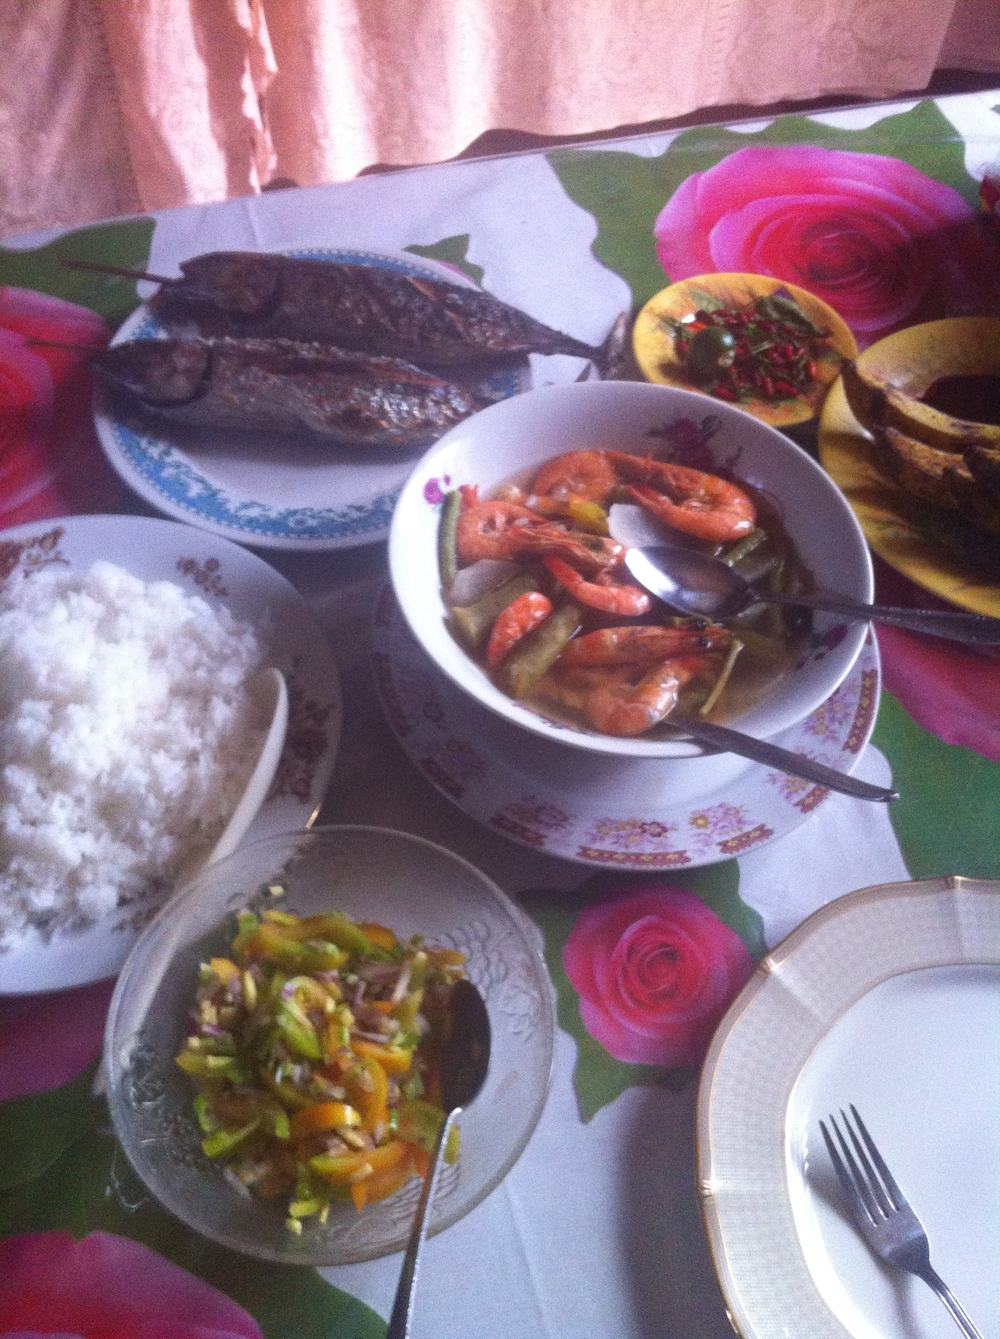 Lunch on the island of Negros Orientales: grilled fish, prawn sinigang, and tomato/ginger/chili salad. Yum!